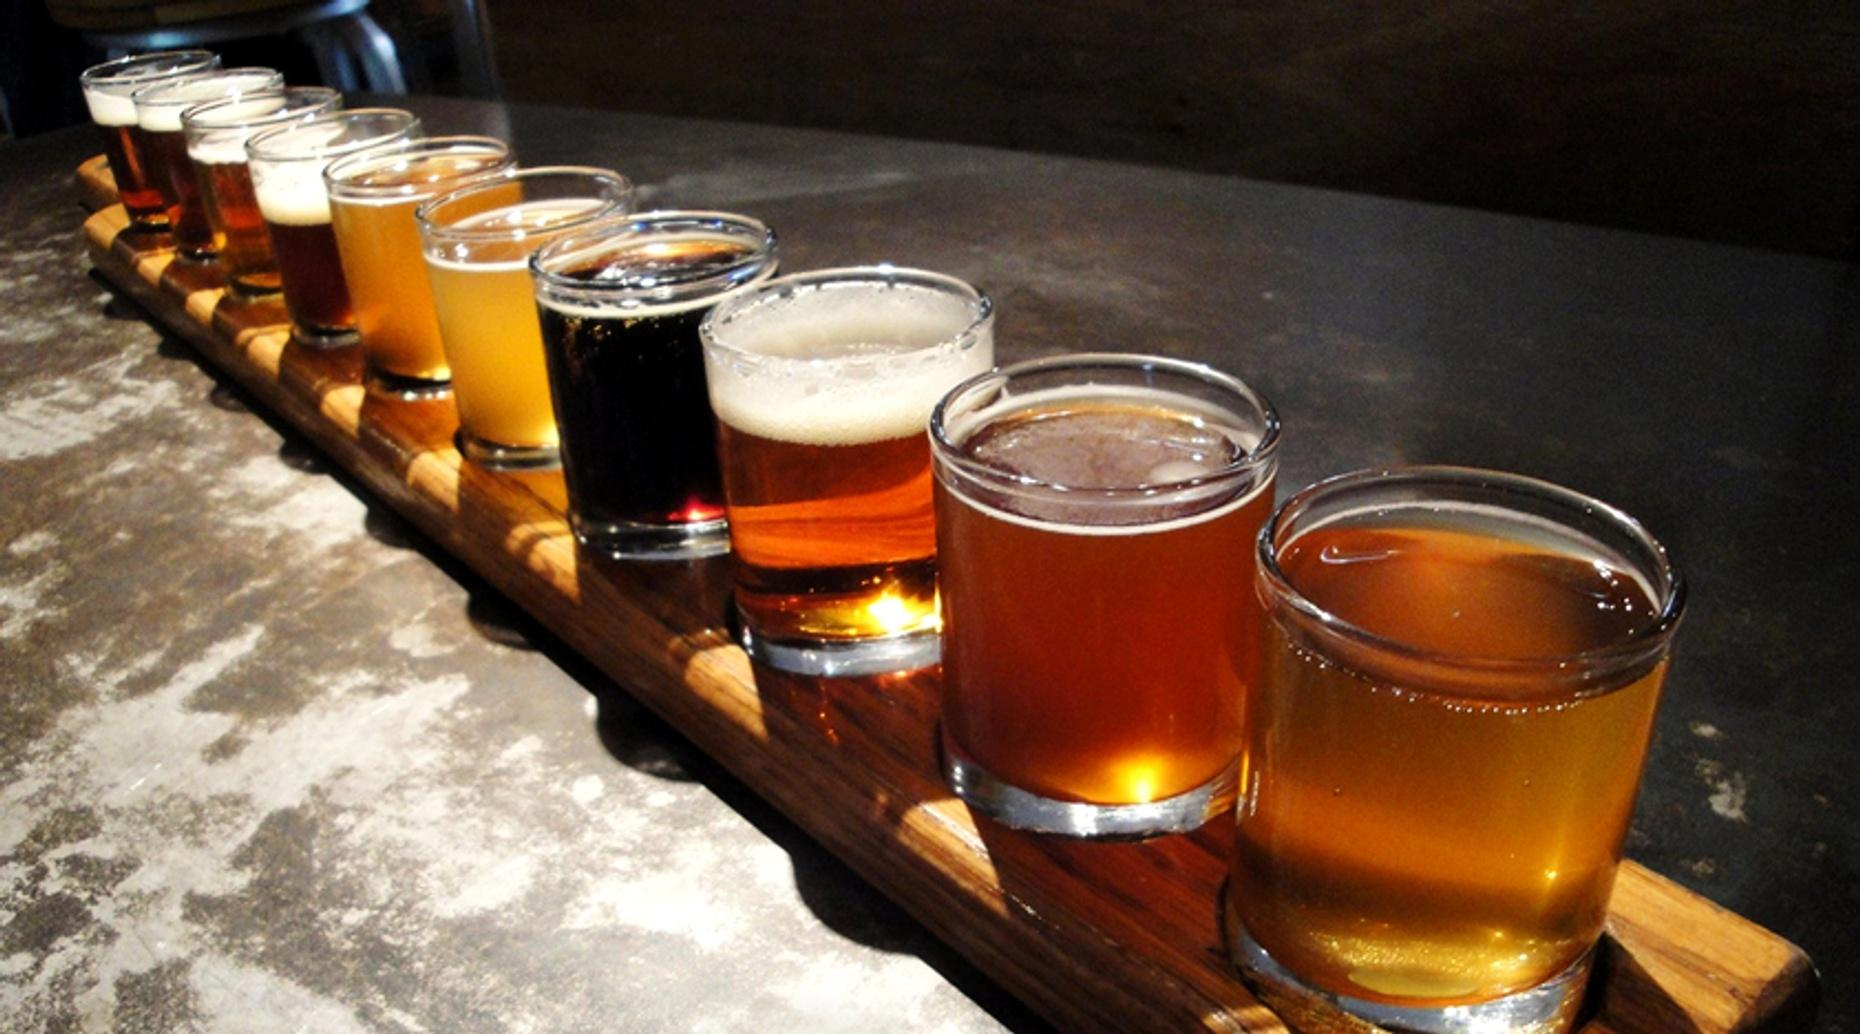 Train Ride and Brewery Adventure in Alaska